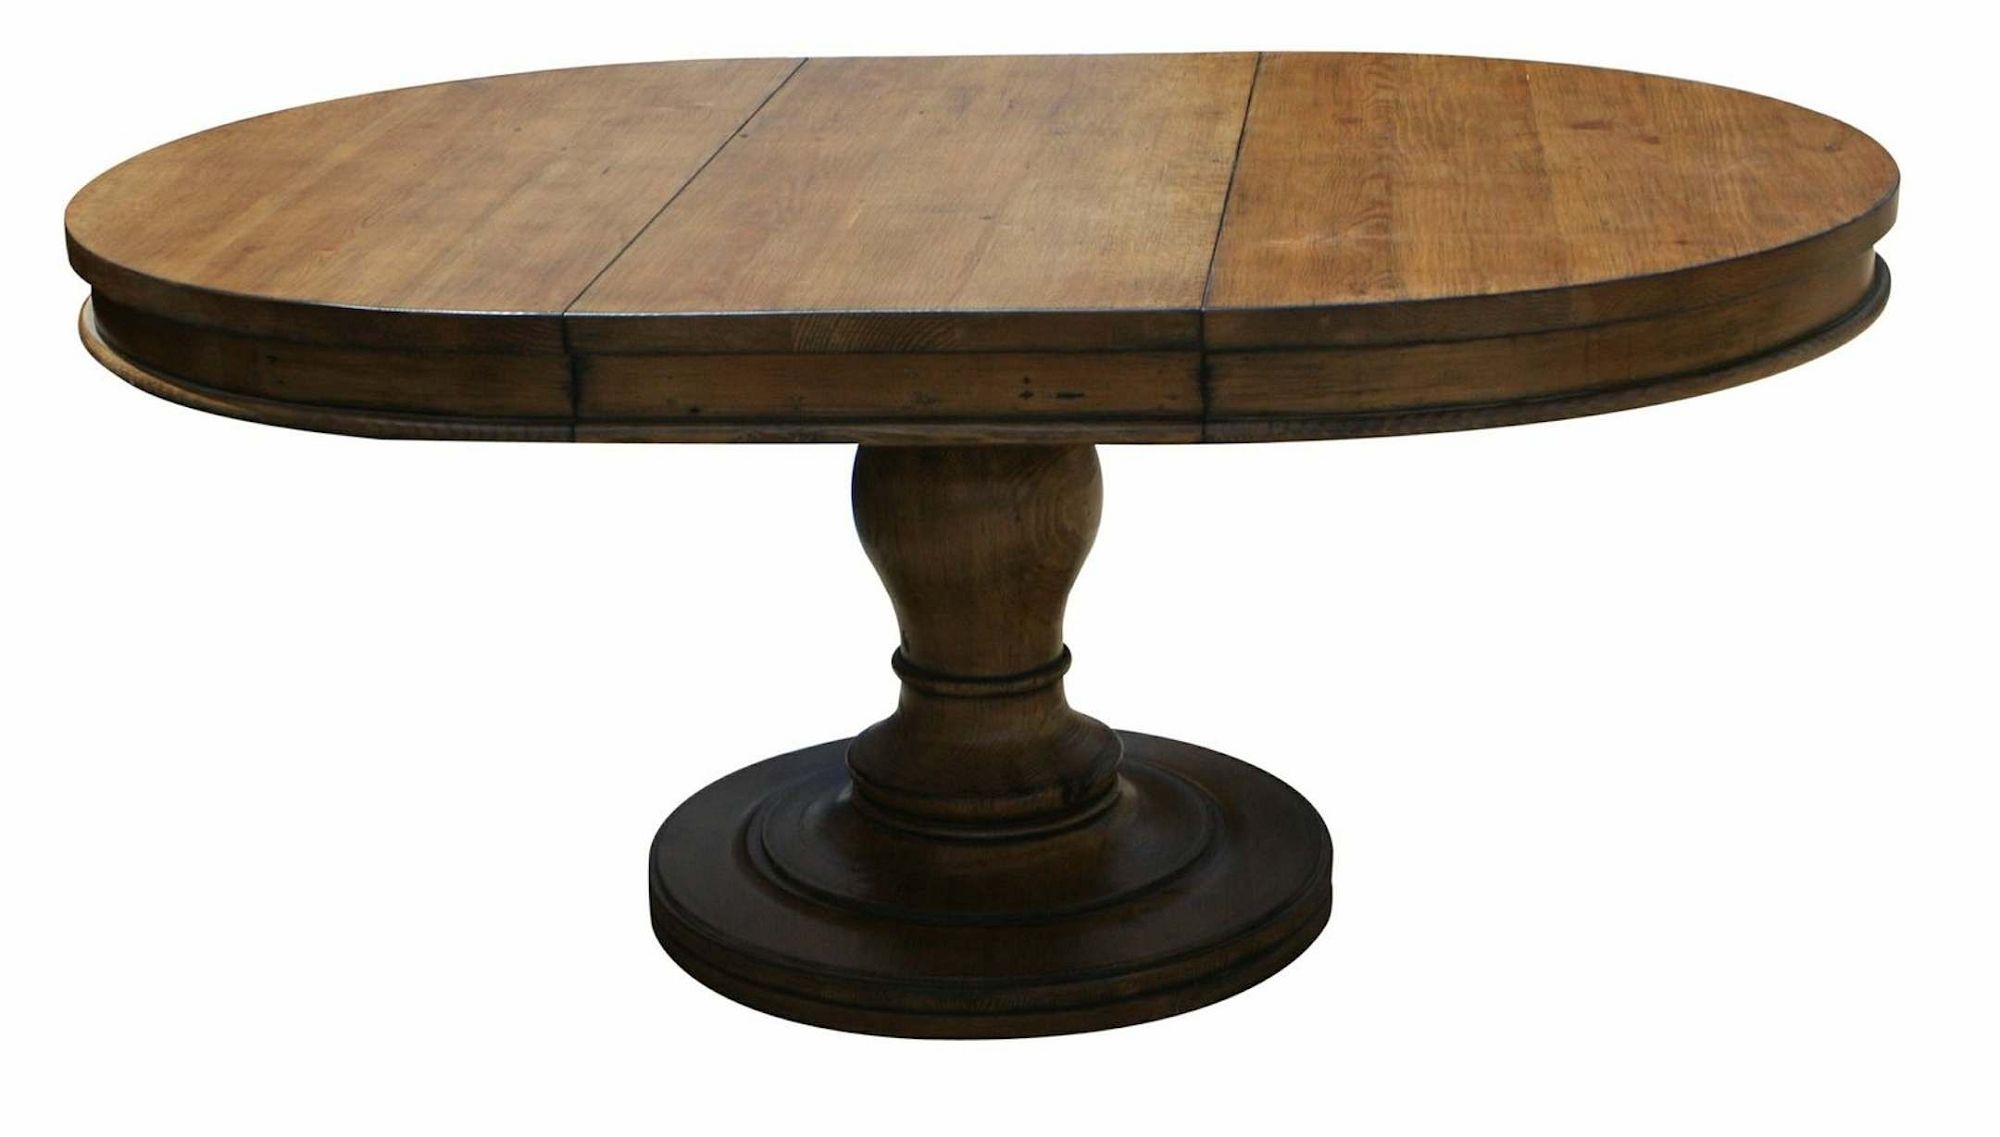 Round Kitchen Table With Leaf Extension Http